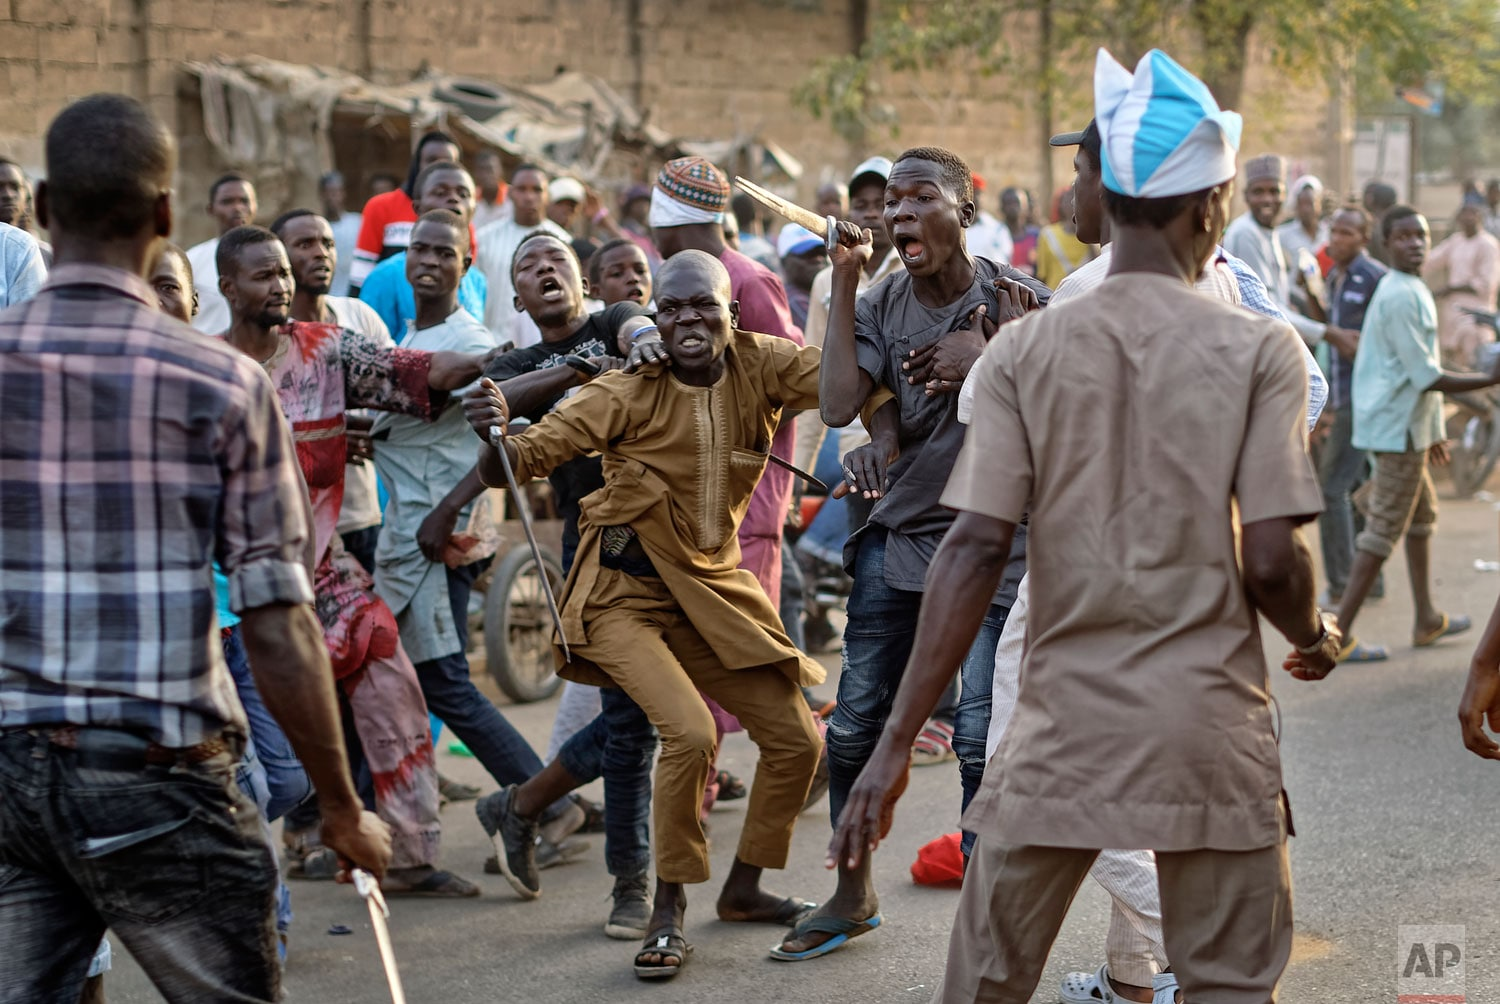 Supporters of the ruling party and main opposition party briefly pull knives and machetes on each other during an otherwise celebratory gathering of supporters of President Muhammadu Buhari anticipating victory, in Kano, northern Nigeria Monday, February 25, 2019. (AP Photo/Ben Curtis)